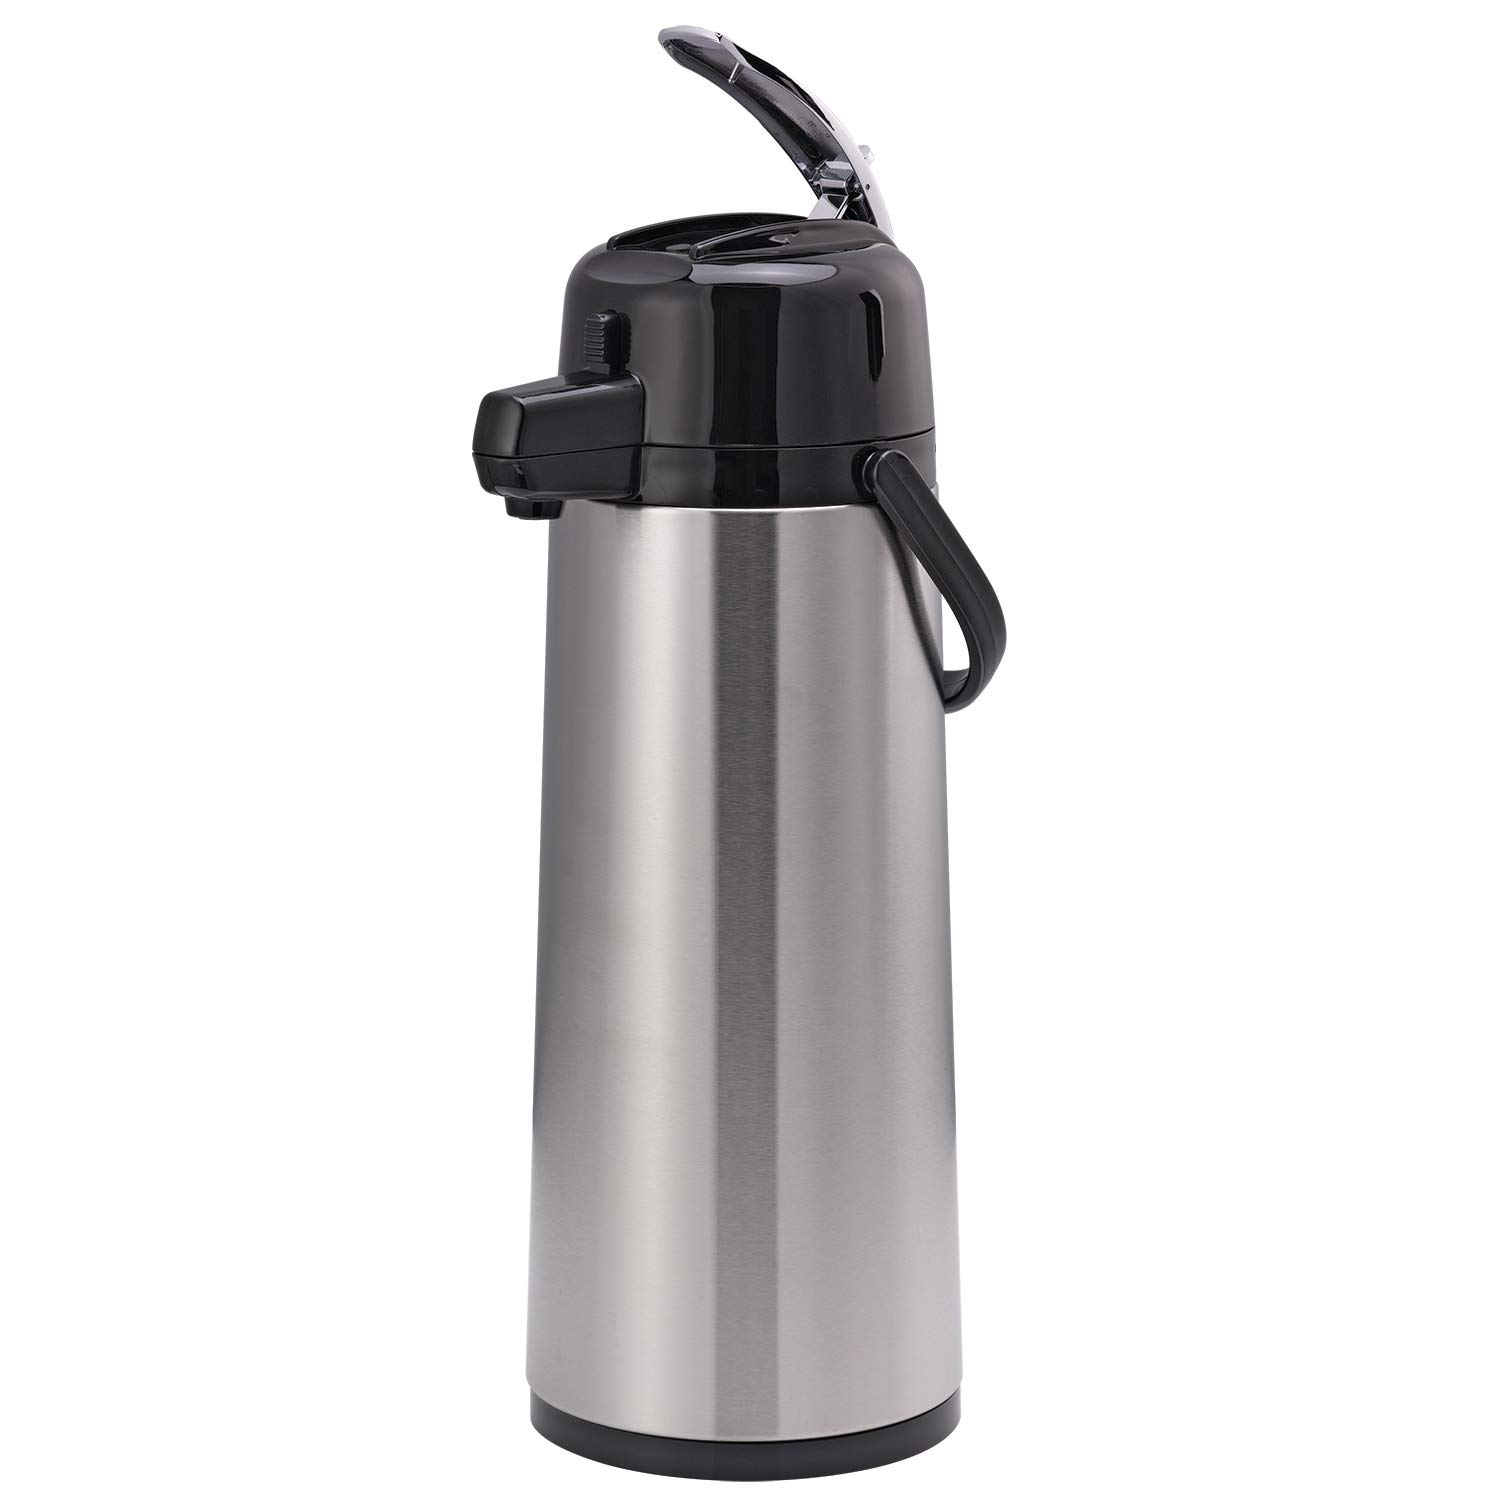 Service Ideas ECAL25S Eco-Air Airpot with Lever Lid, 2.5L, Silver